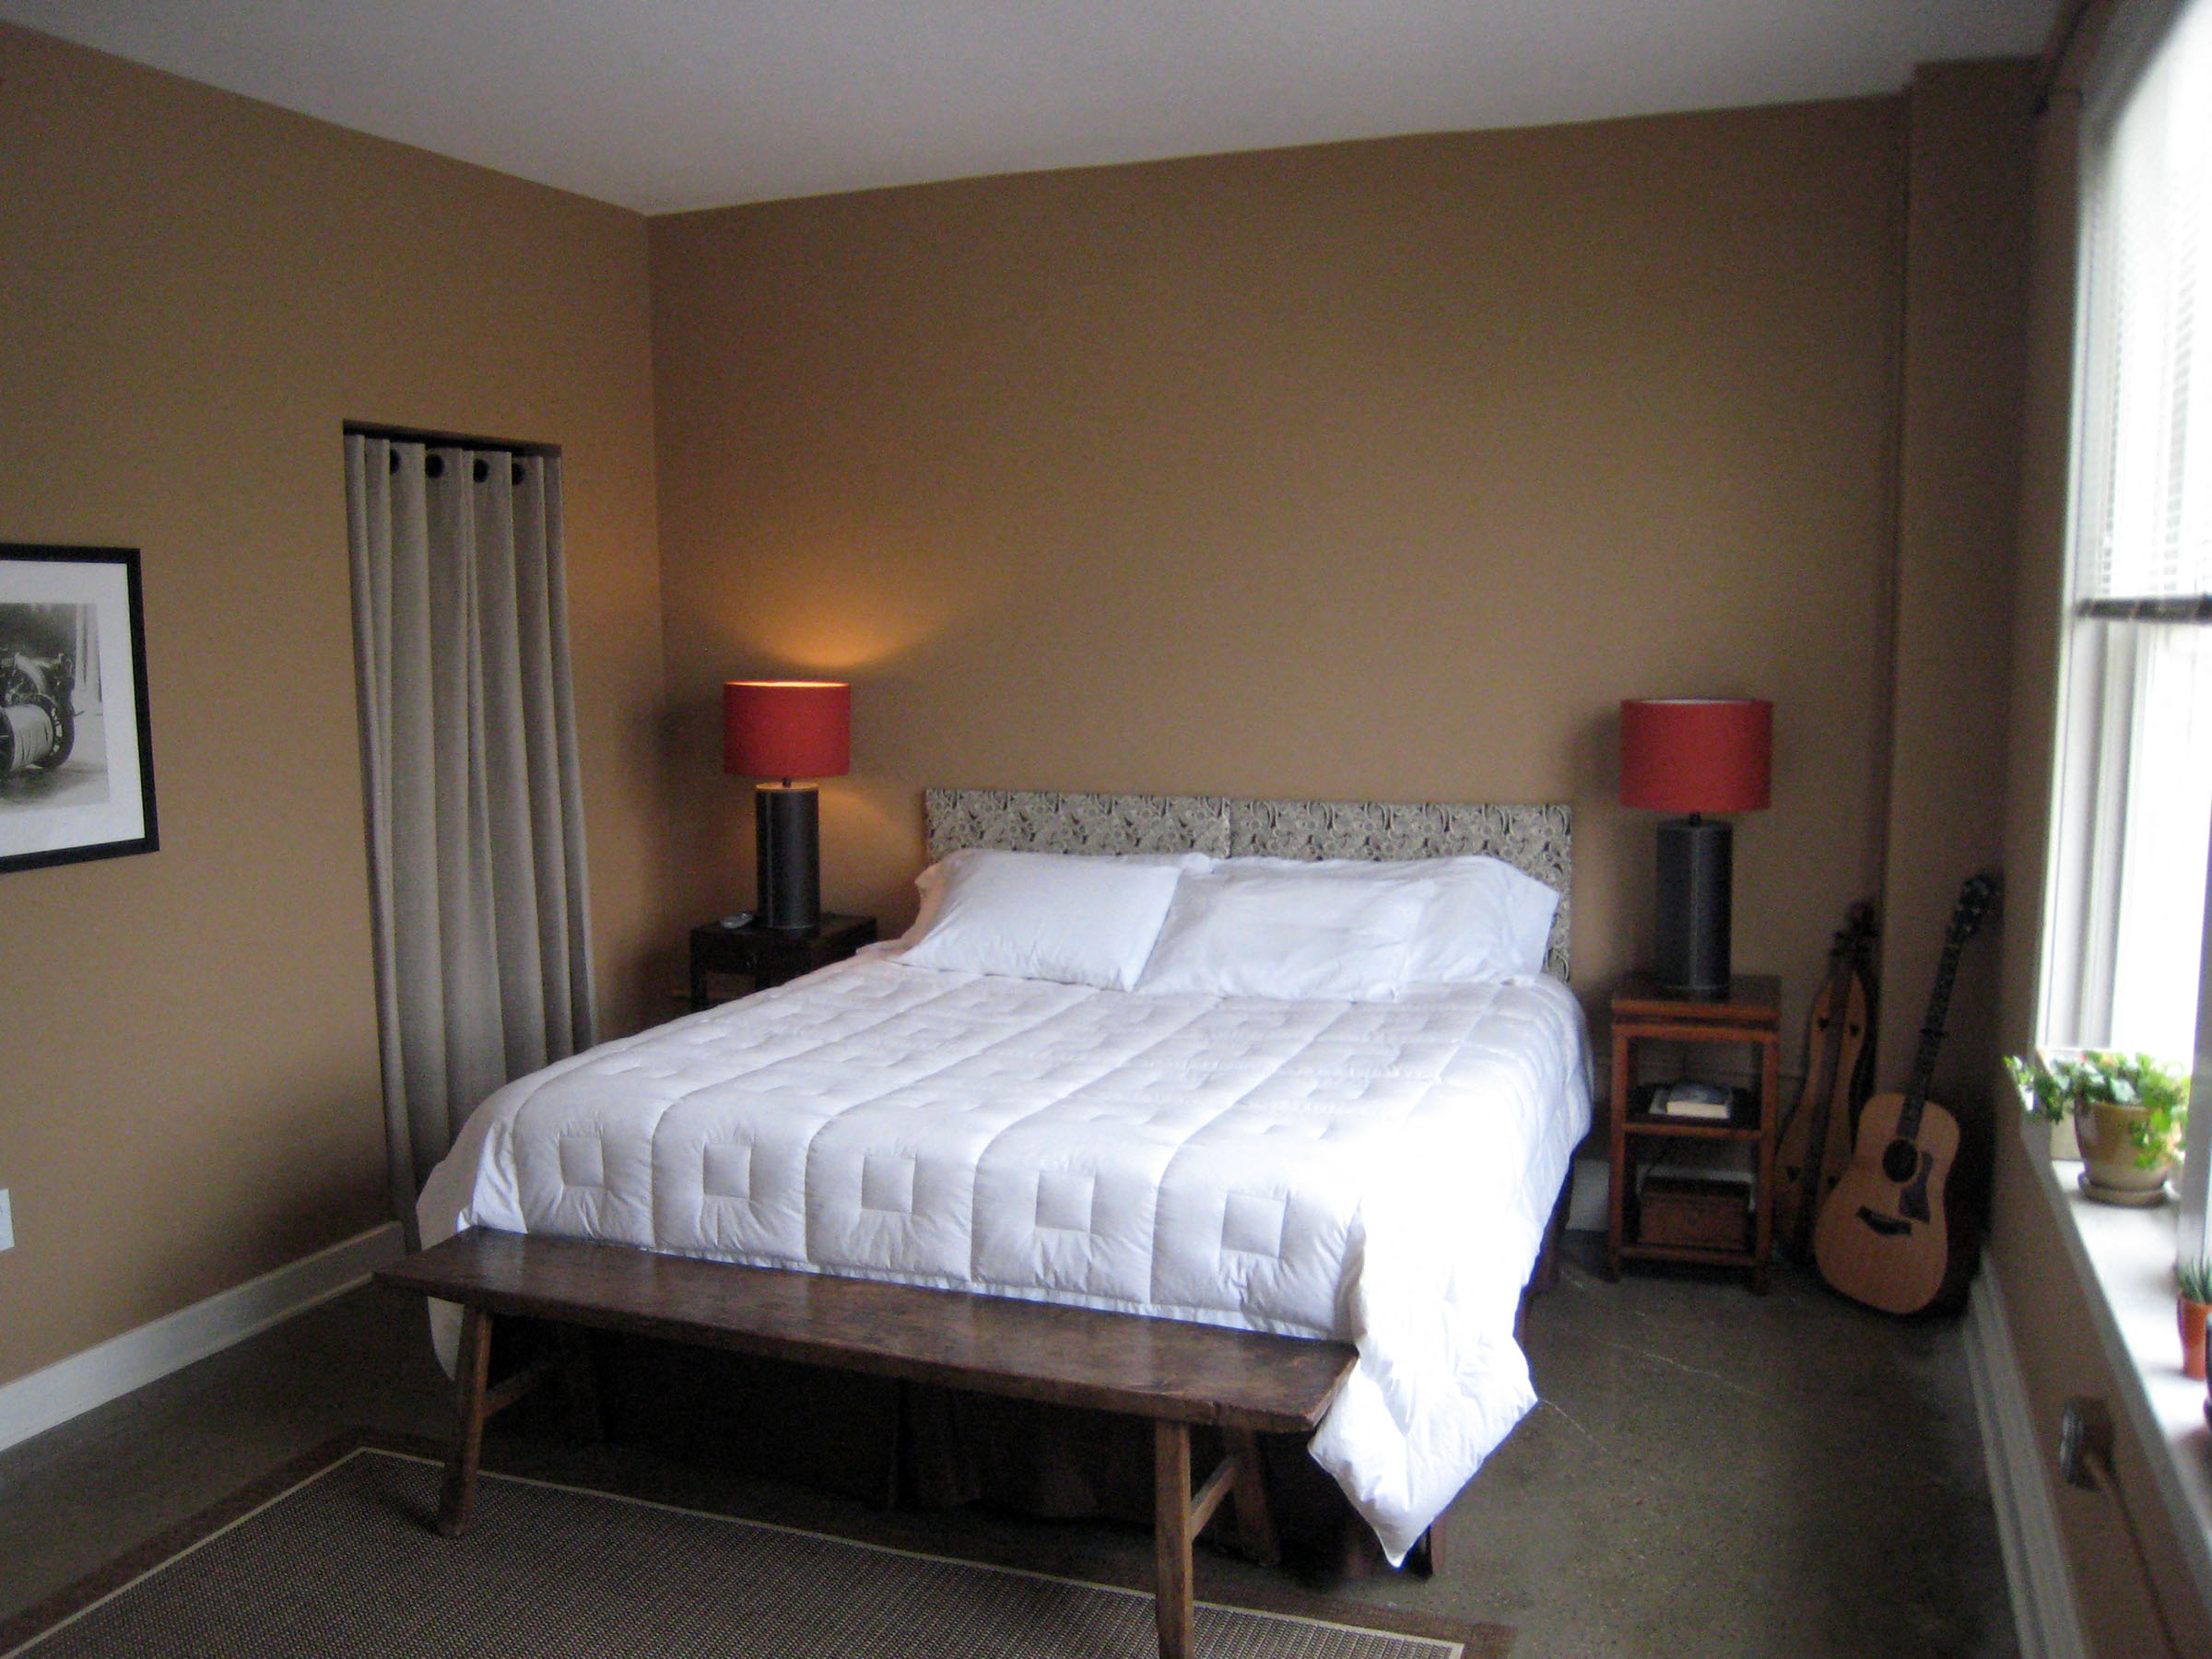 $920 0 bedroom Apartment in Shelbyville - Call 201-845-7300 for more information